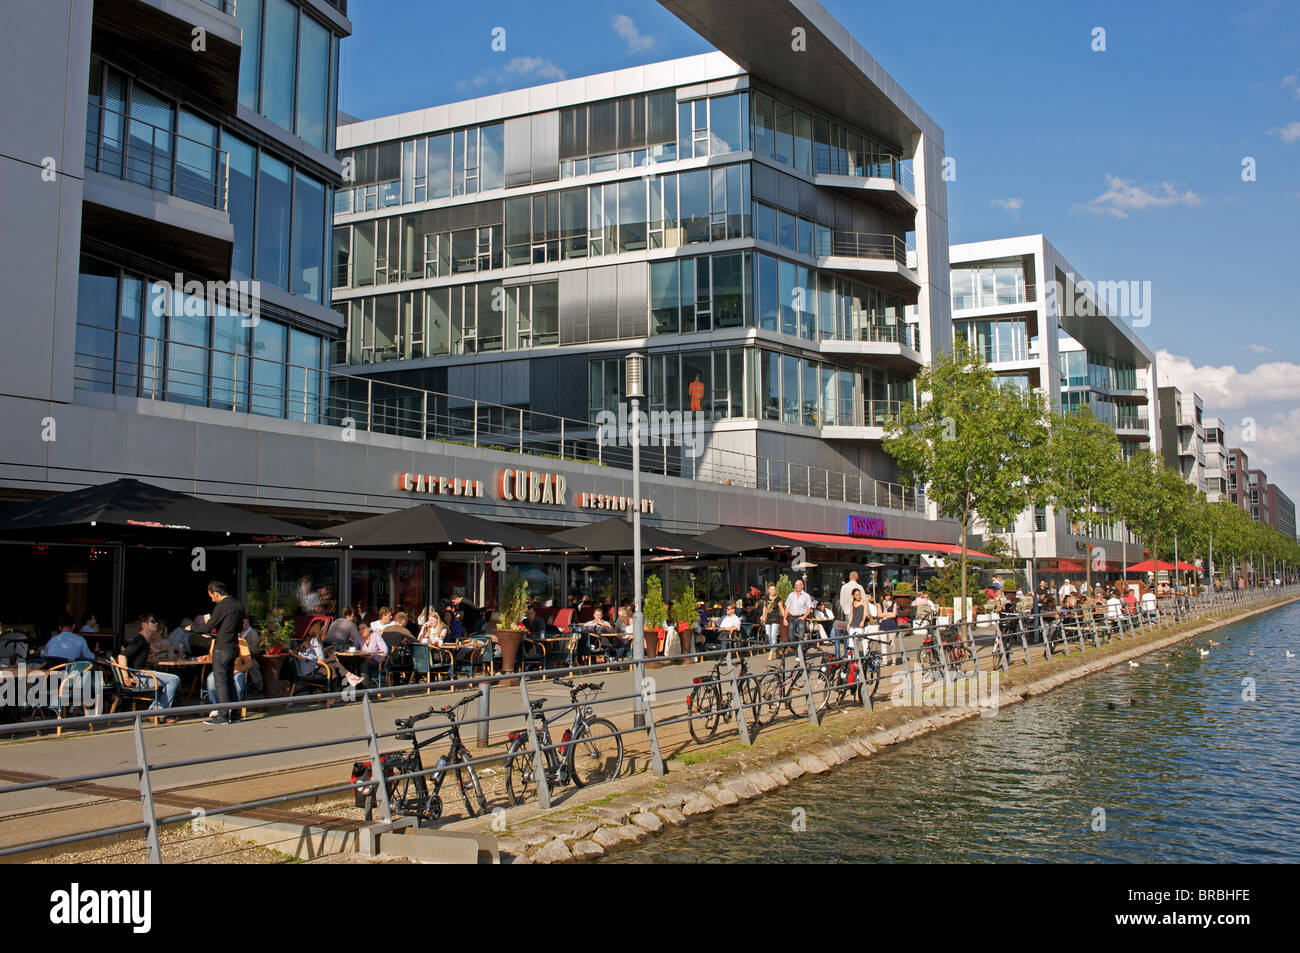 Cafes, restaurants and offices on the newly developed waterfront, Duisburg, North Rhine-Westphalia, Germany. - Stock Image